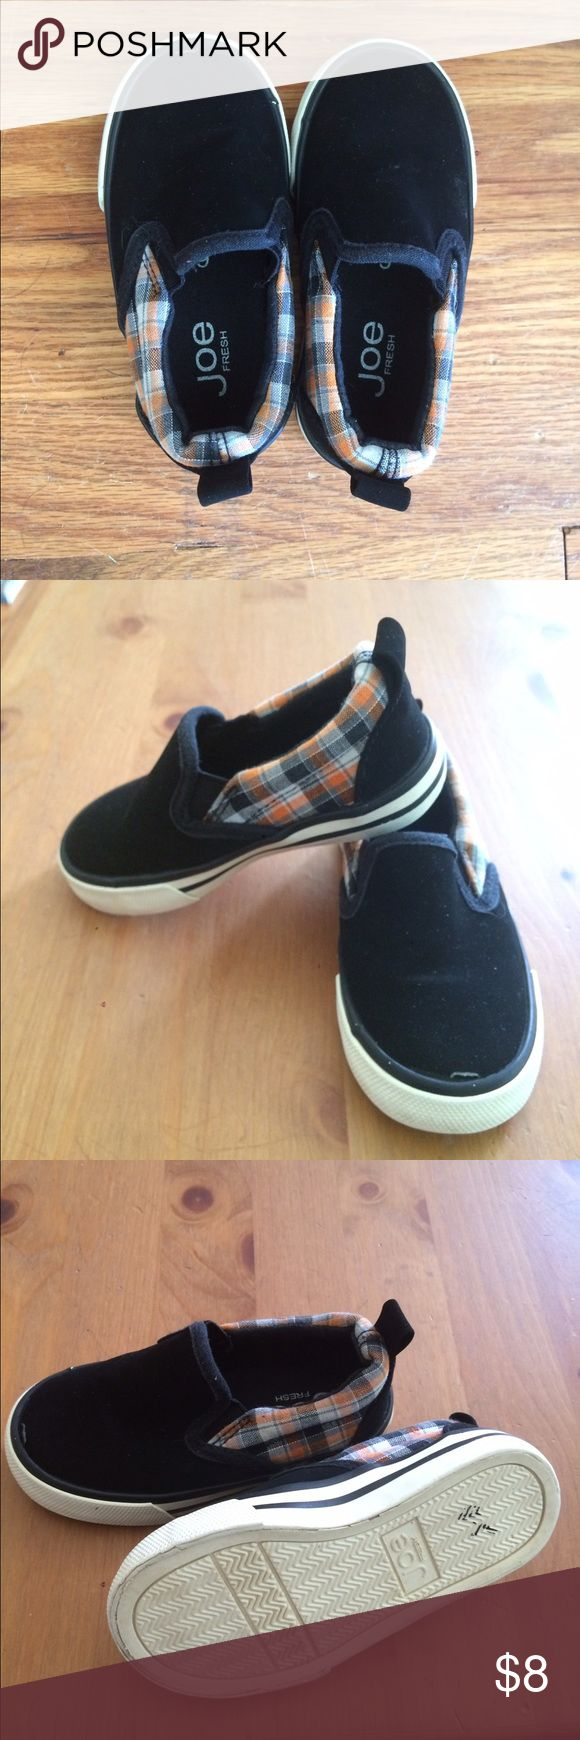 Joe Fresh Toddler Slip On Shoes Black slip on shoes for toddlers. Size 6. Great used condition. Joe Fresh Shoes Sneakers